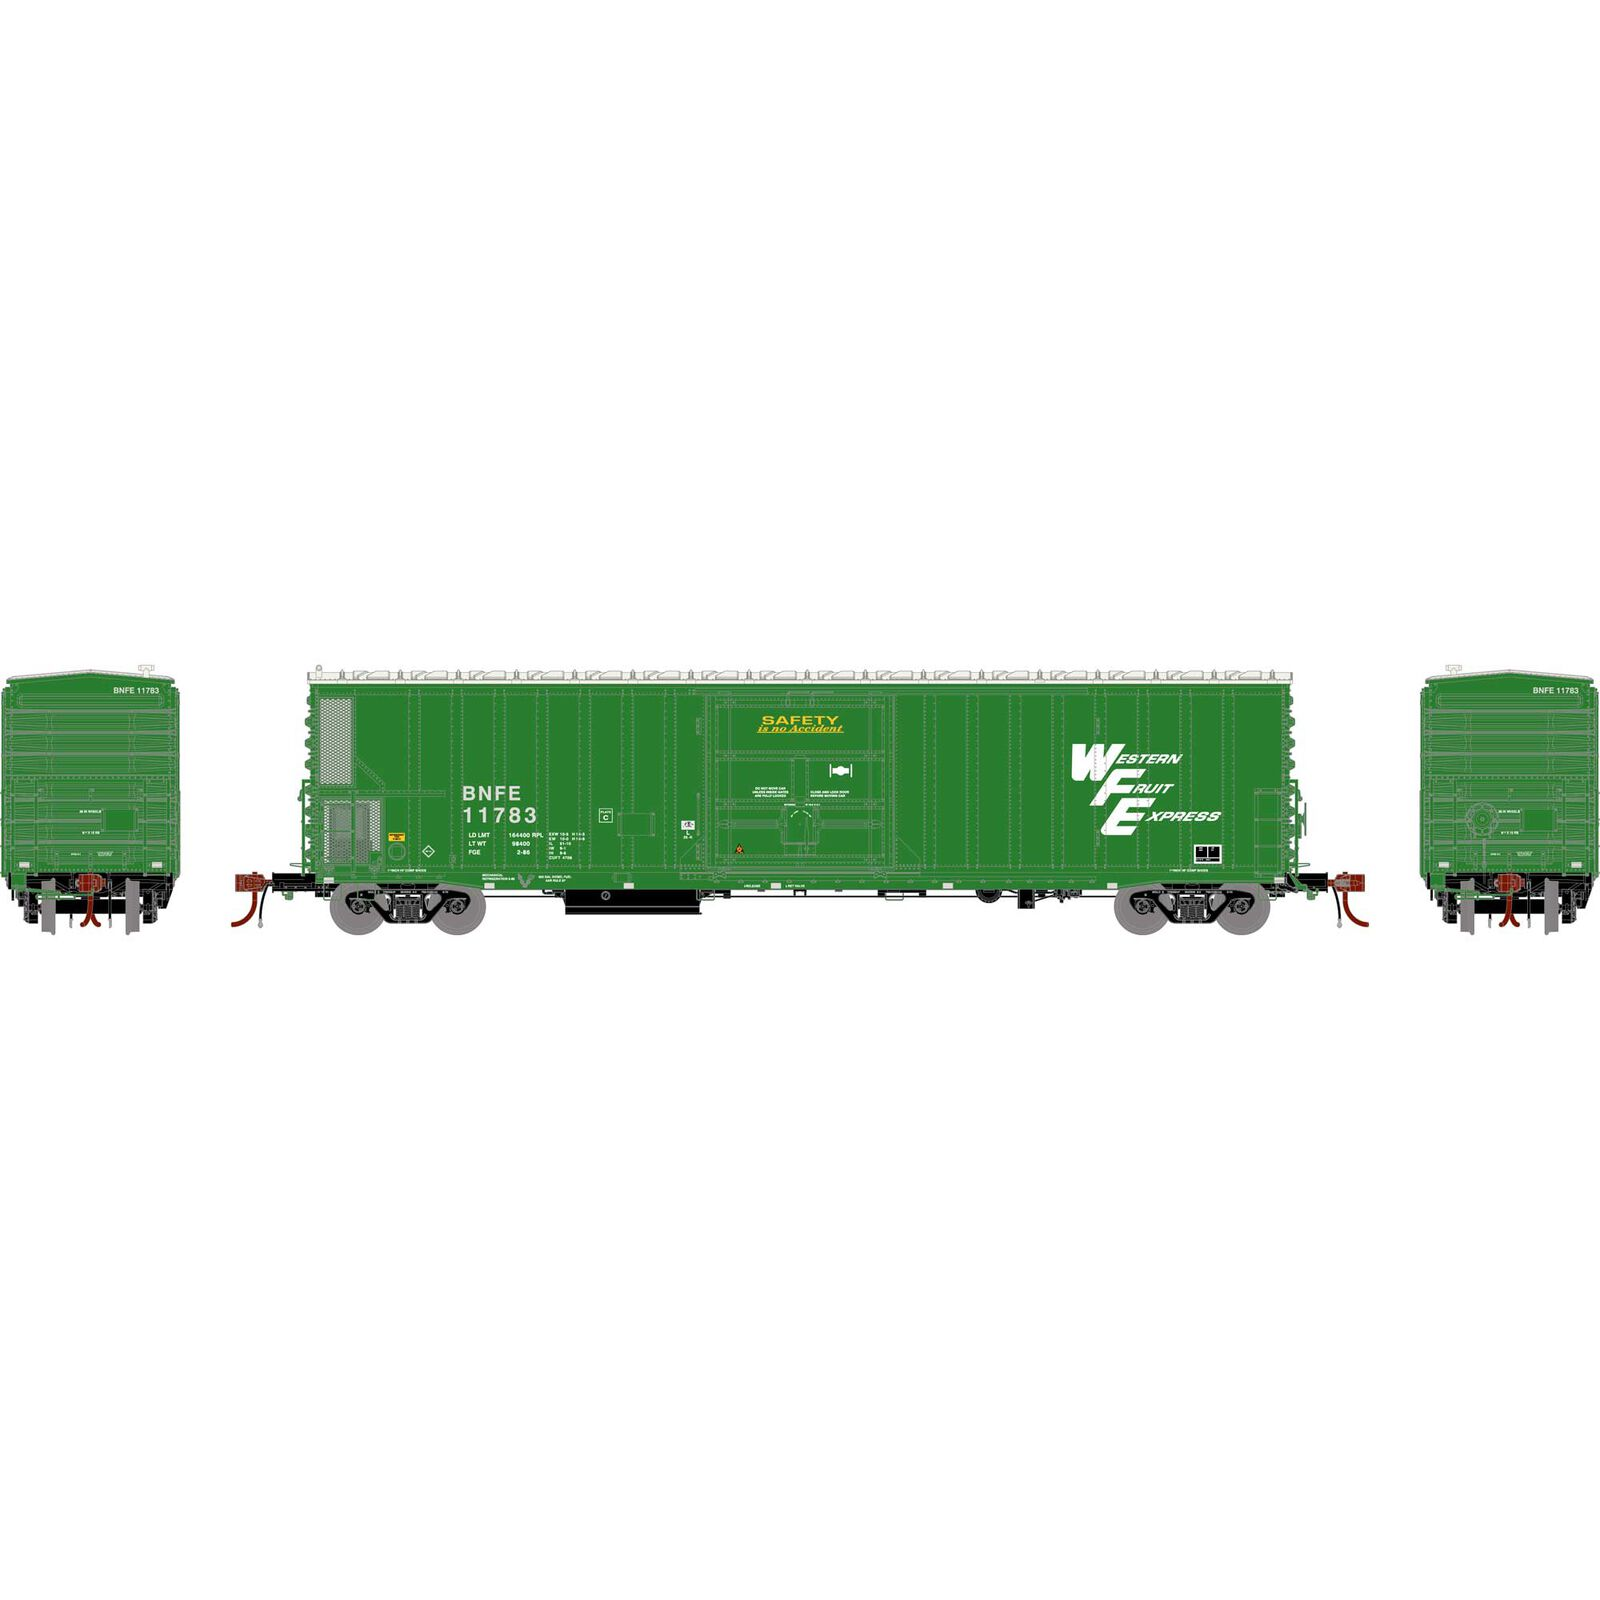 N 57' Mechanical Reefer with Sound, BNFE/Green #11783